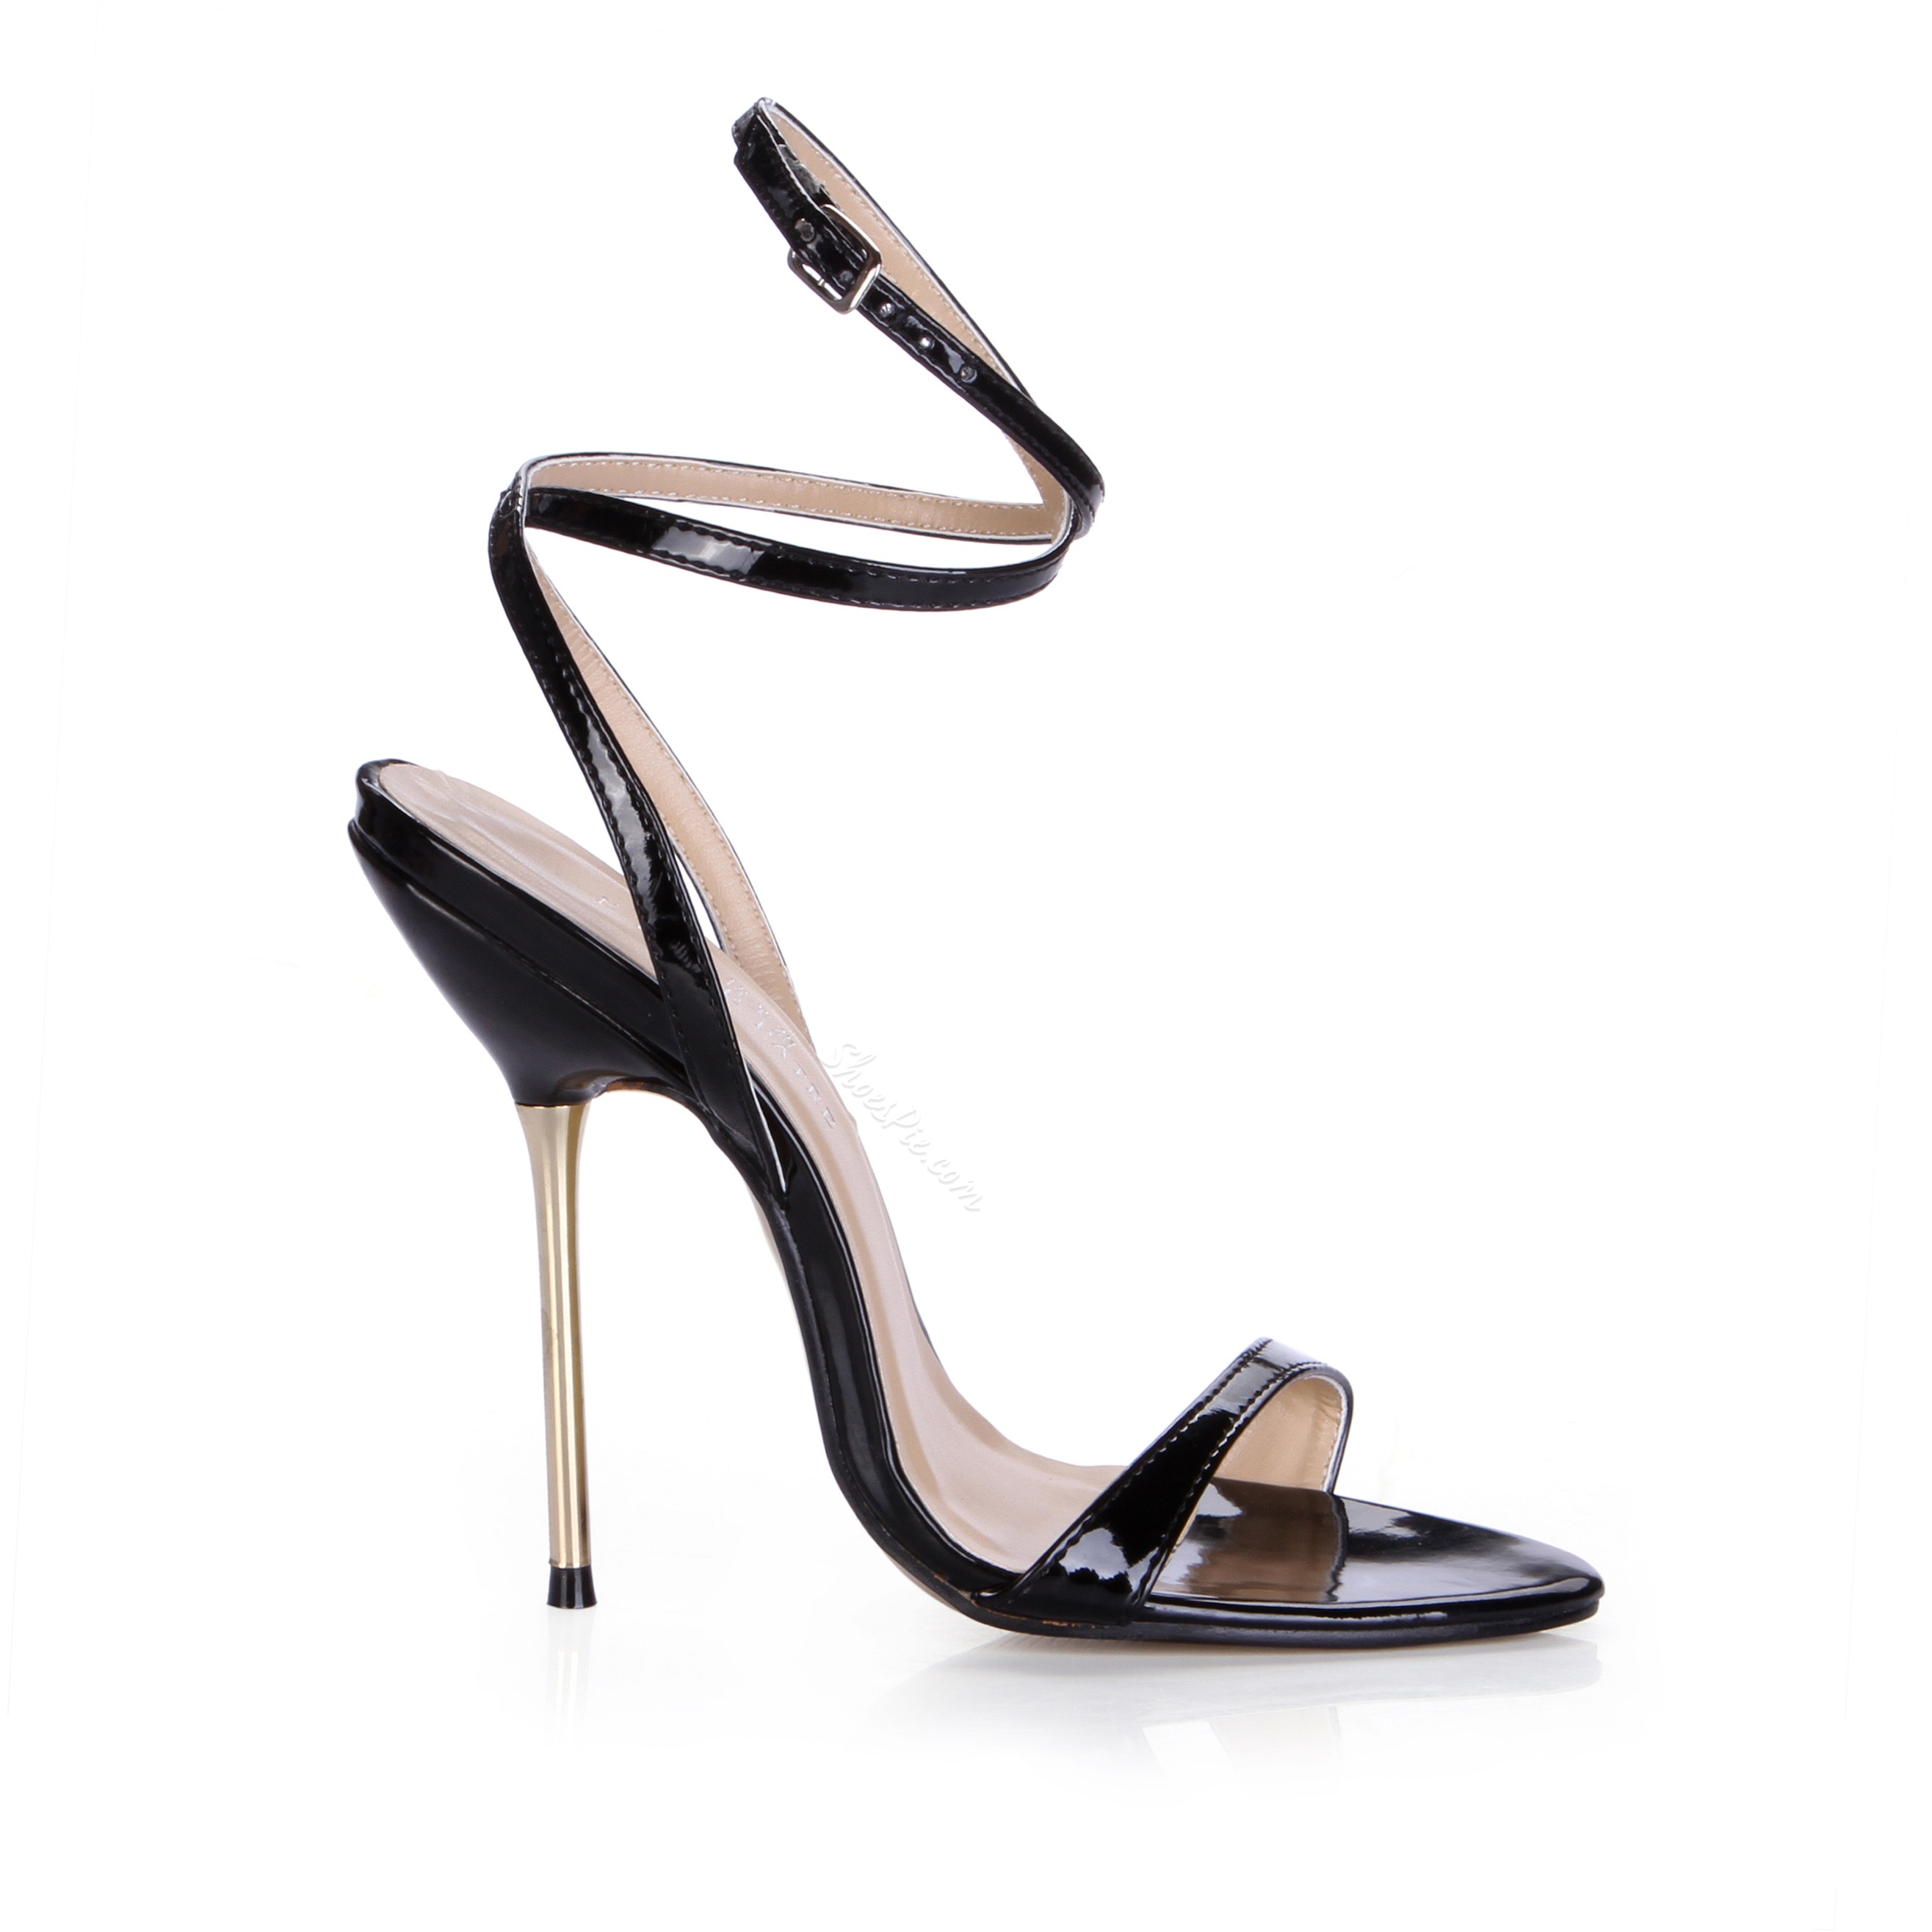 Elegant Black Platform Stiletto Heel Dress Sandals